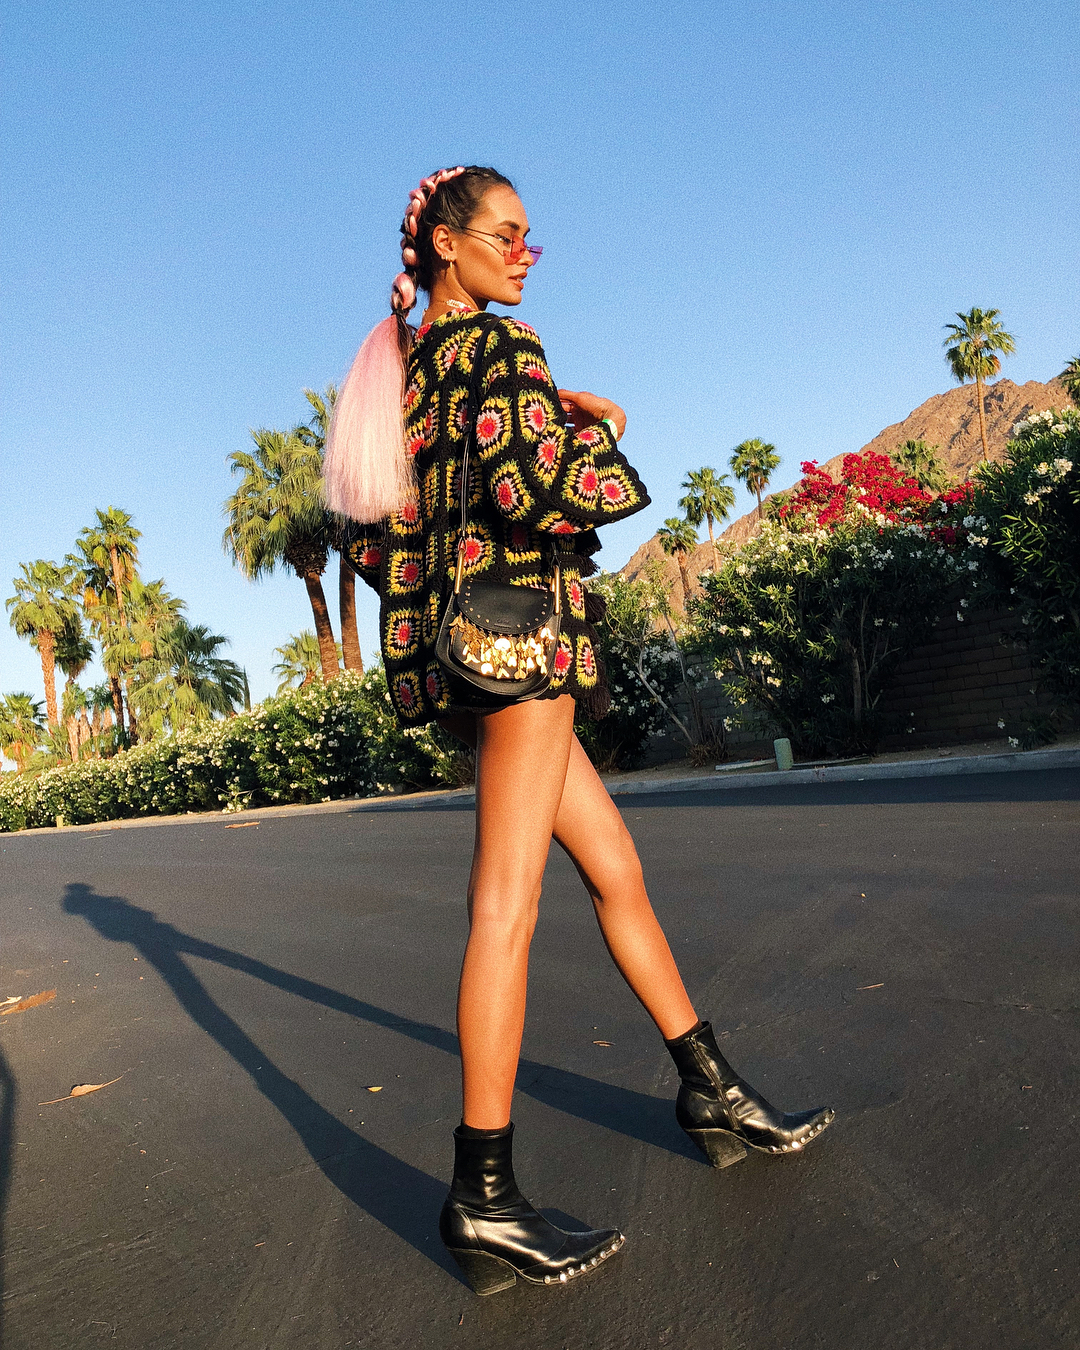 bad-girl-riri-kicked-off-coachella-2018-with-60s-vibe-fun-looks-from-other-celebs-and-influencers